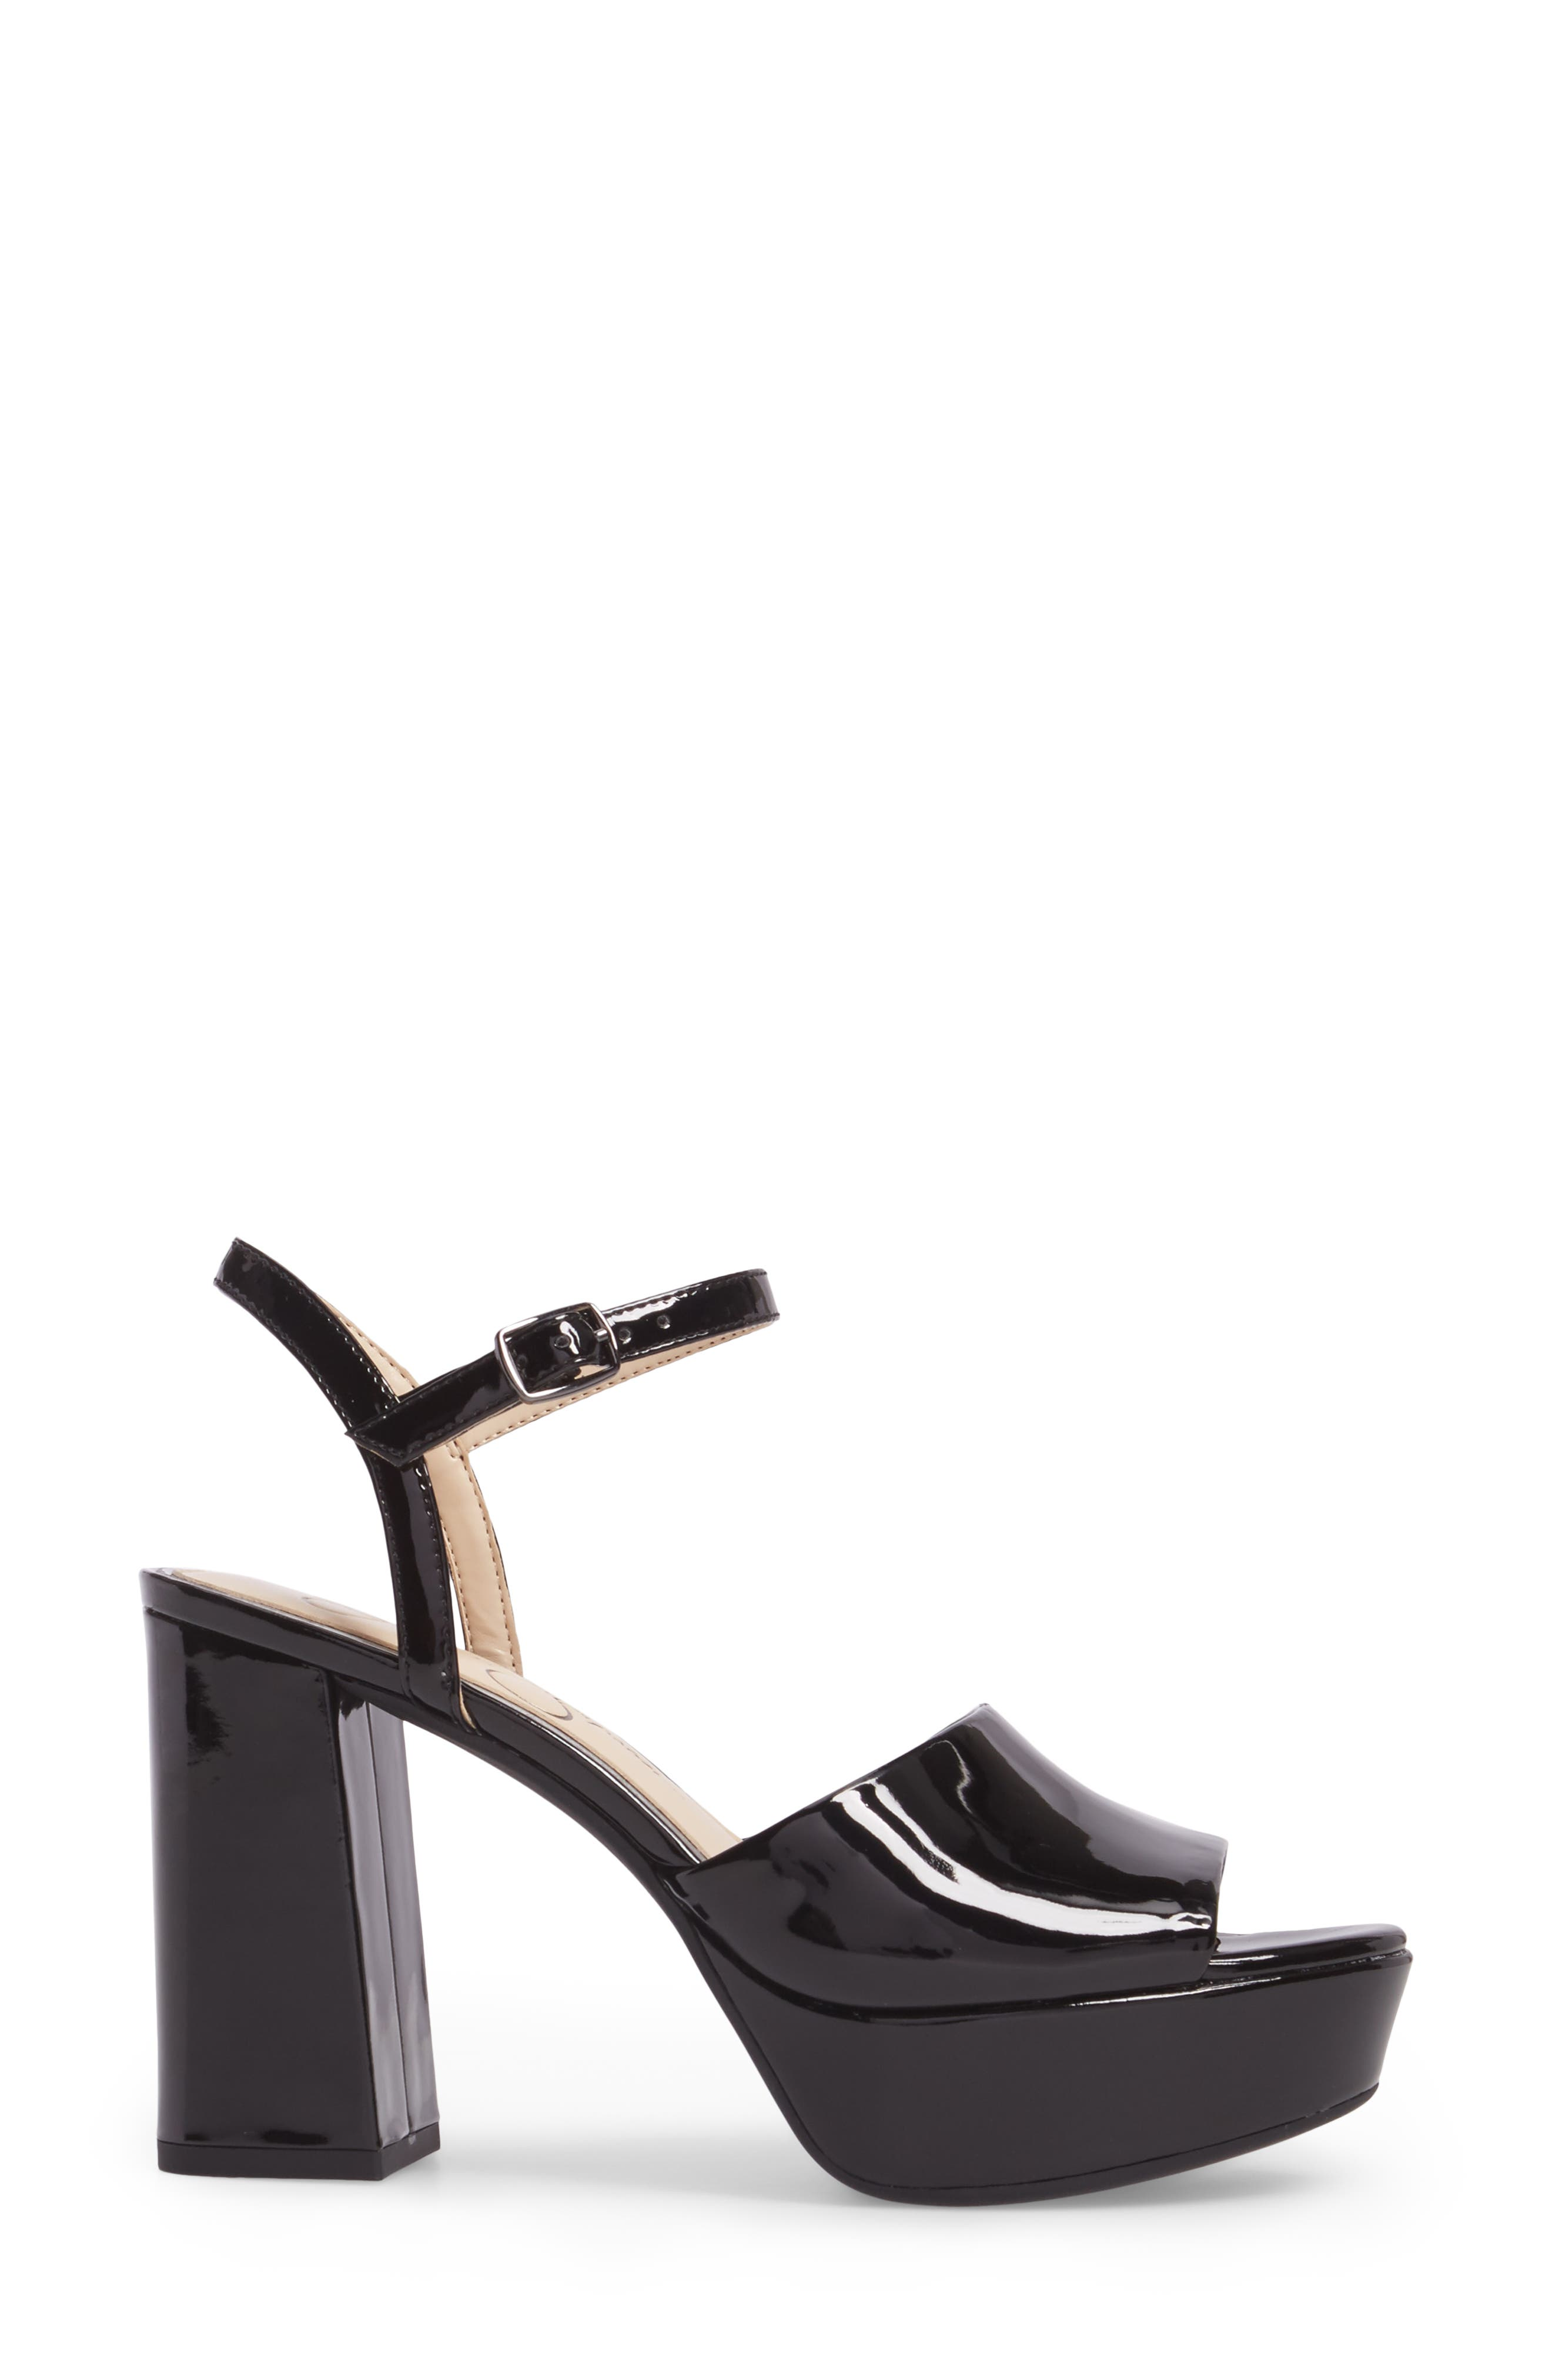 Kerrick Platform Sandal,                             Alternate thumbnail 3, color,                             001